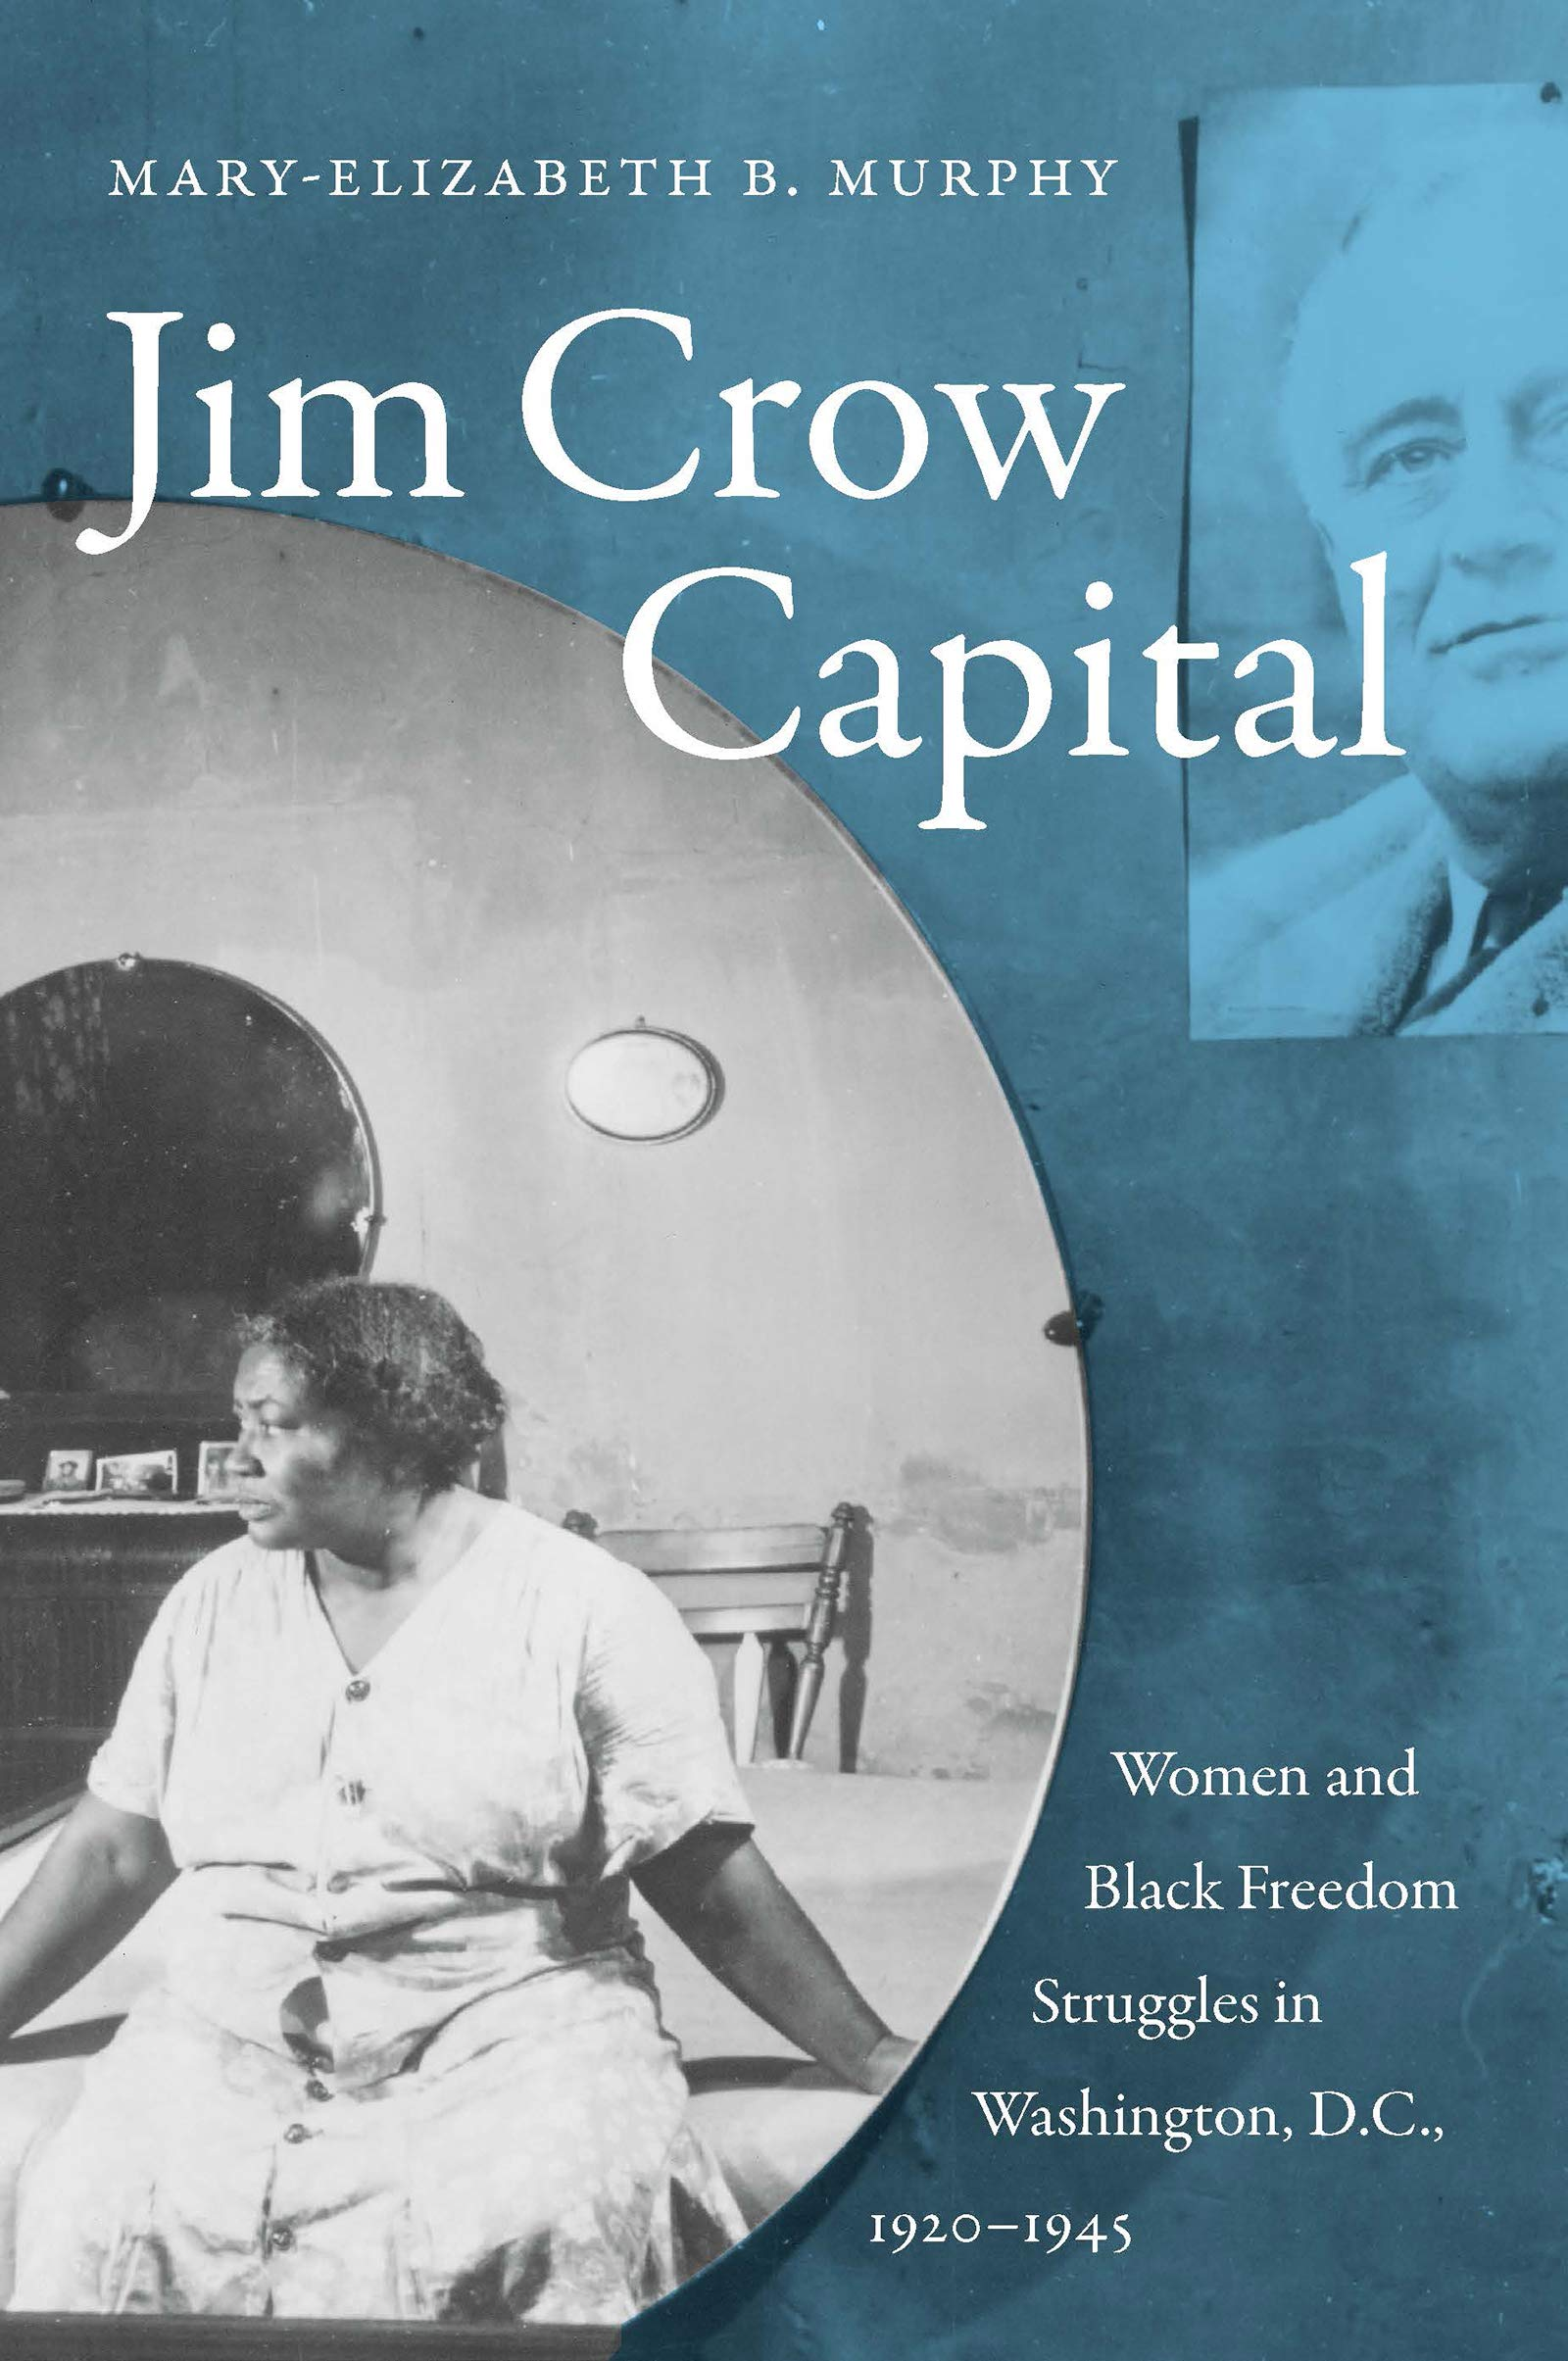 Image result for Jim Crow Capital: Women and Black Freedom Struggles in Washington D.C., 1920-1945